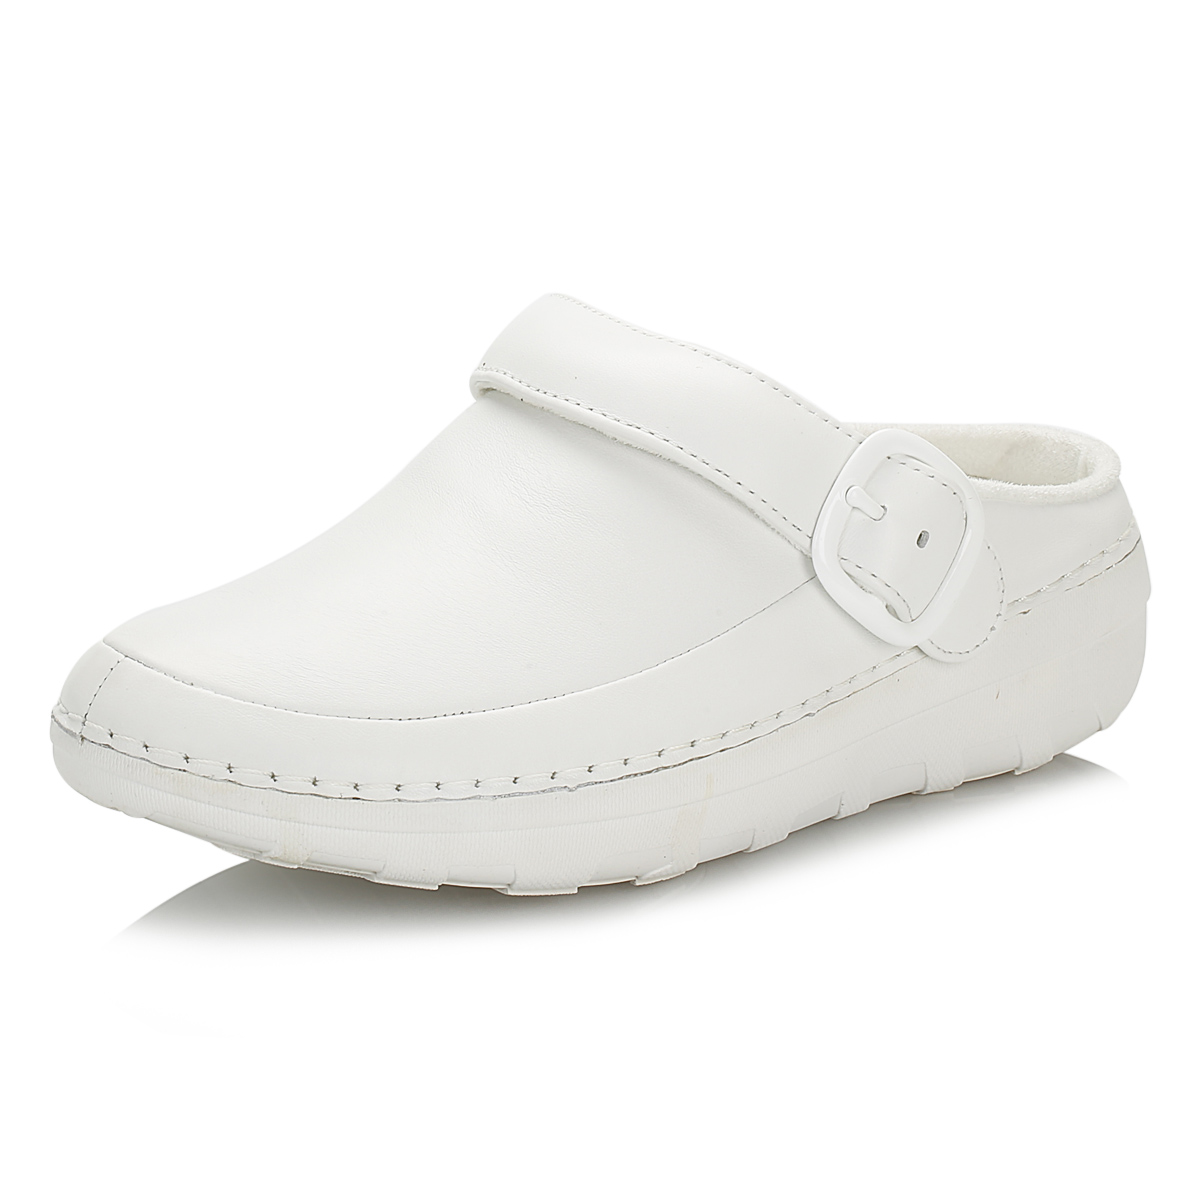 Fitflop-femme-urban-blanc-gogh-pro-superlight-sabots-cuir-boucle-chaussures